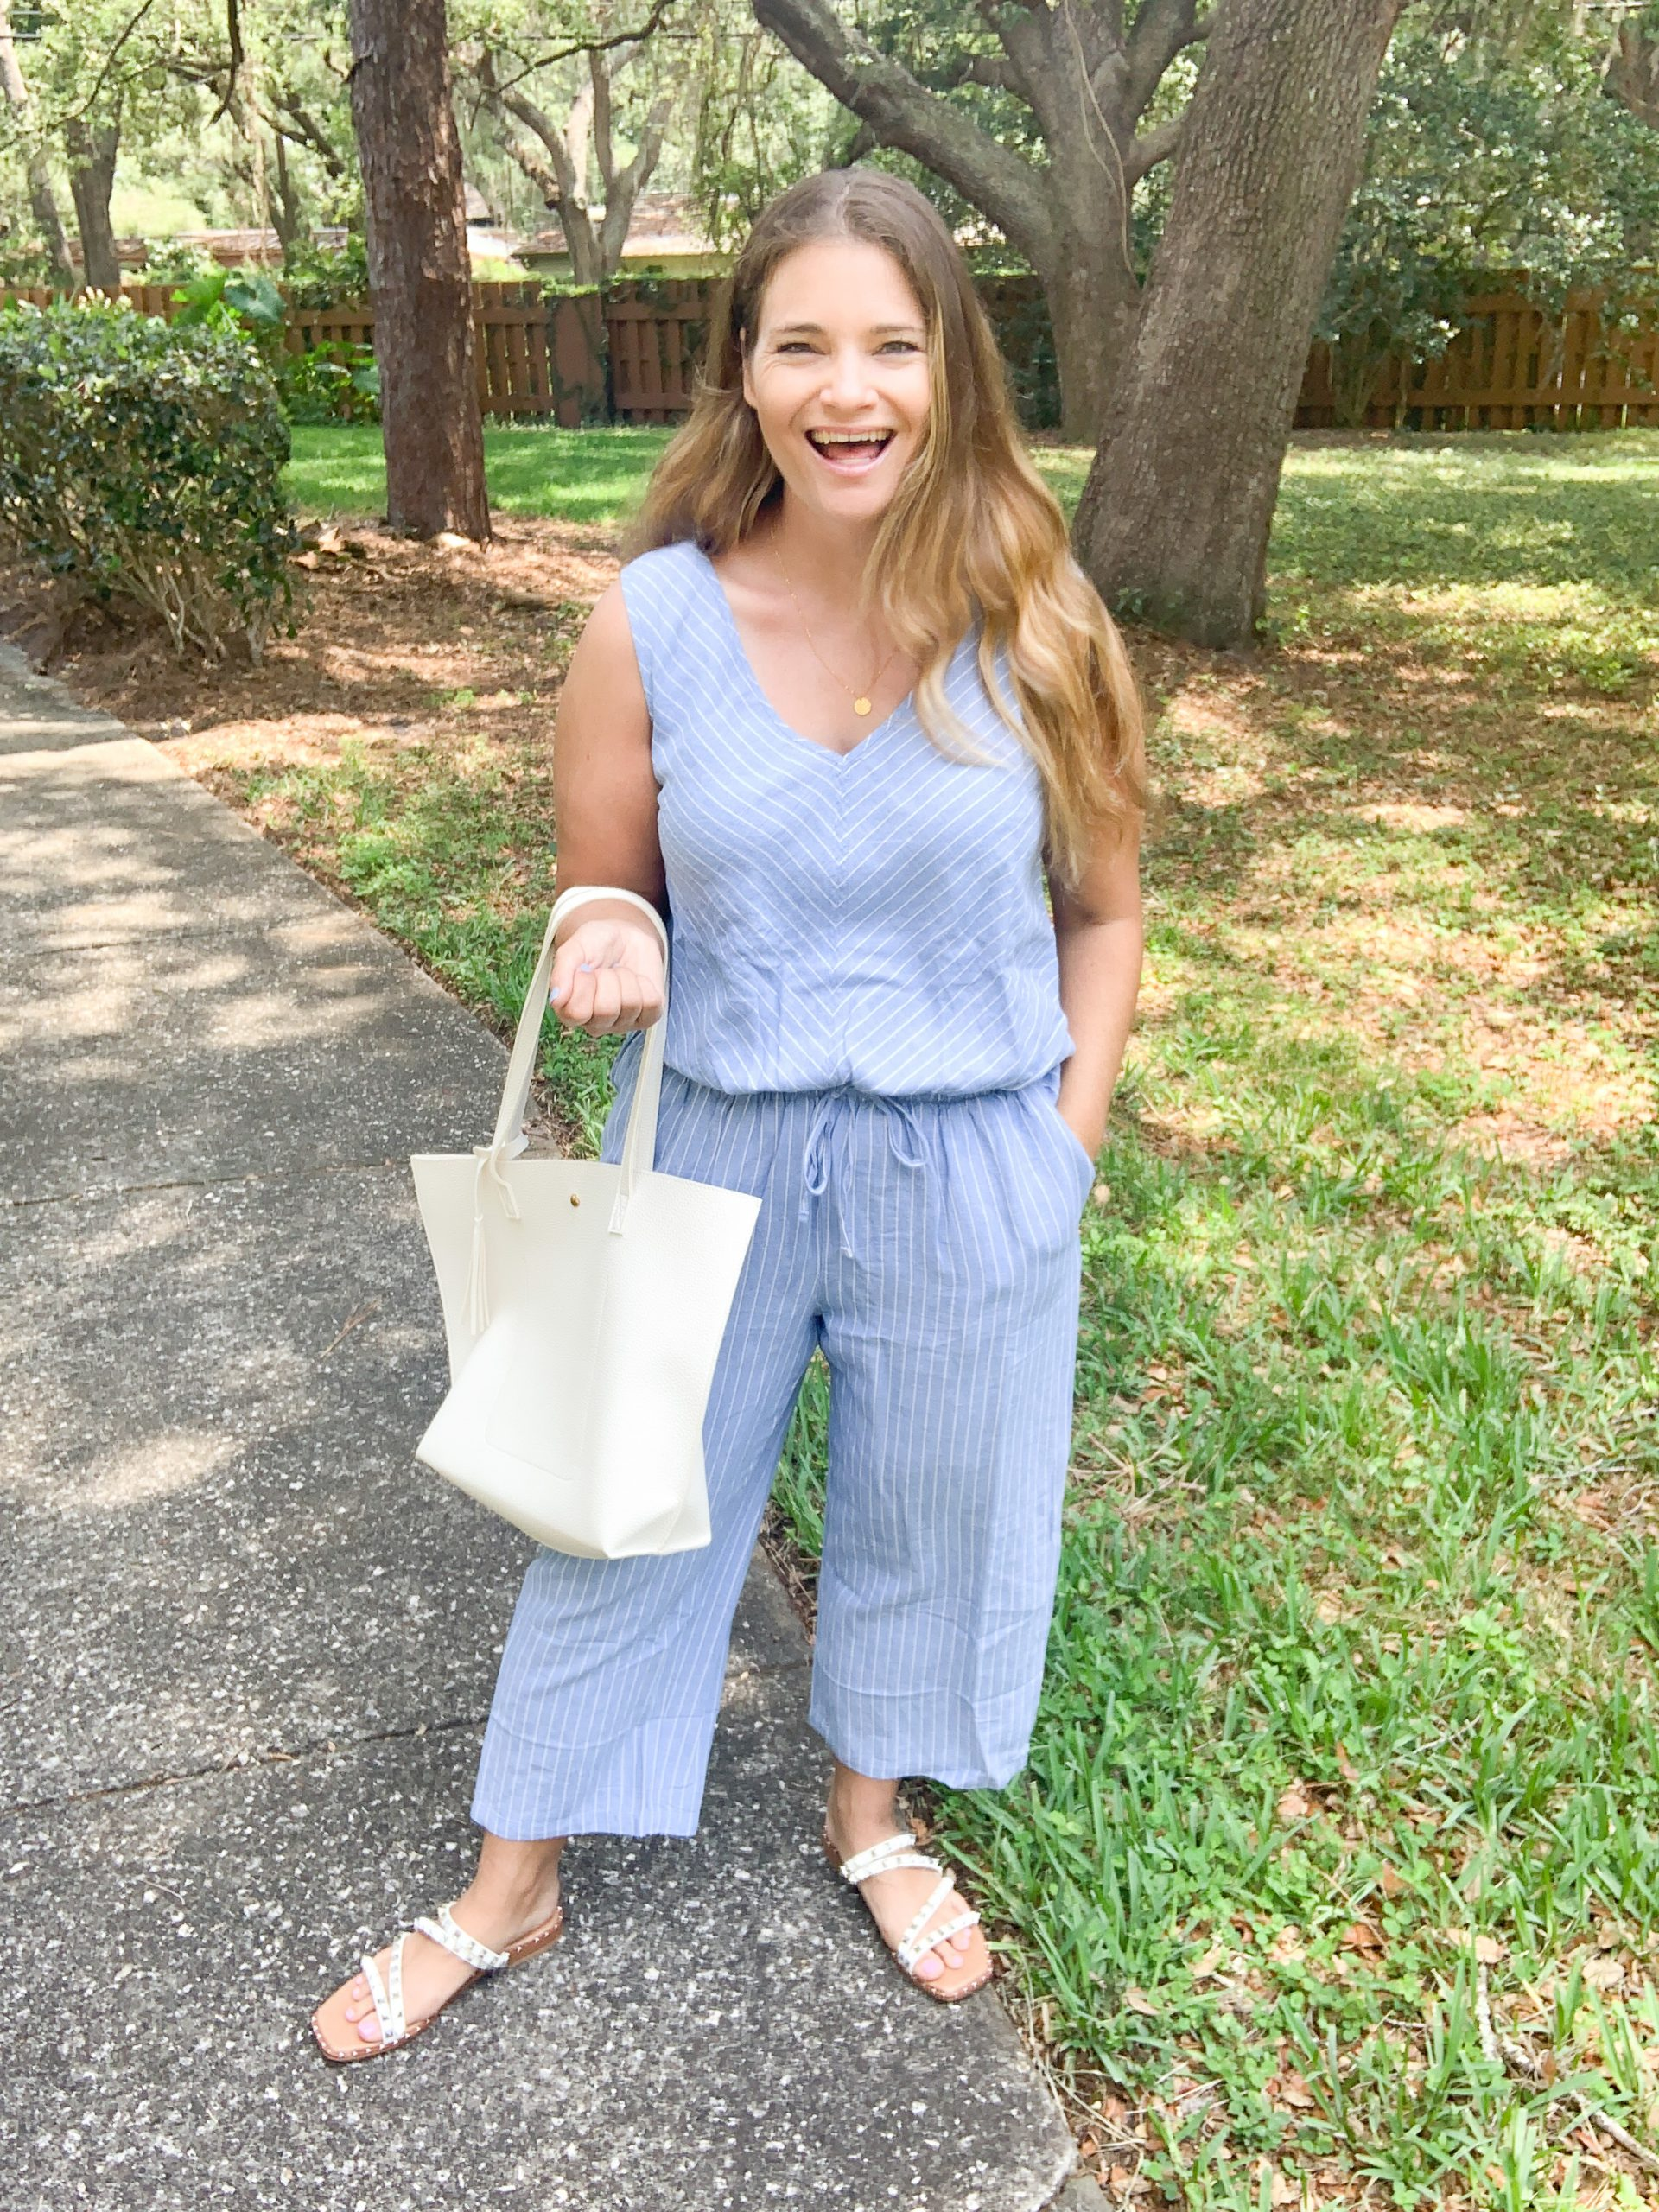 This affordable mom tote bag from Amazon is a must have! It comes in a wide variety of colors at a budget friendly price point. Outfit with Amazon pinstripe jumpsuit, white tote, and Steve Madden Skylar sandals.